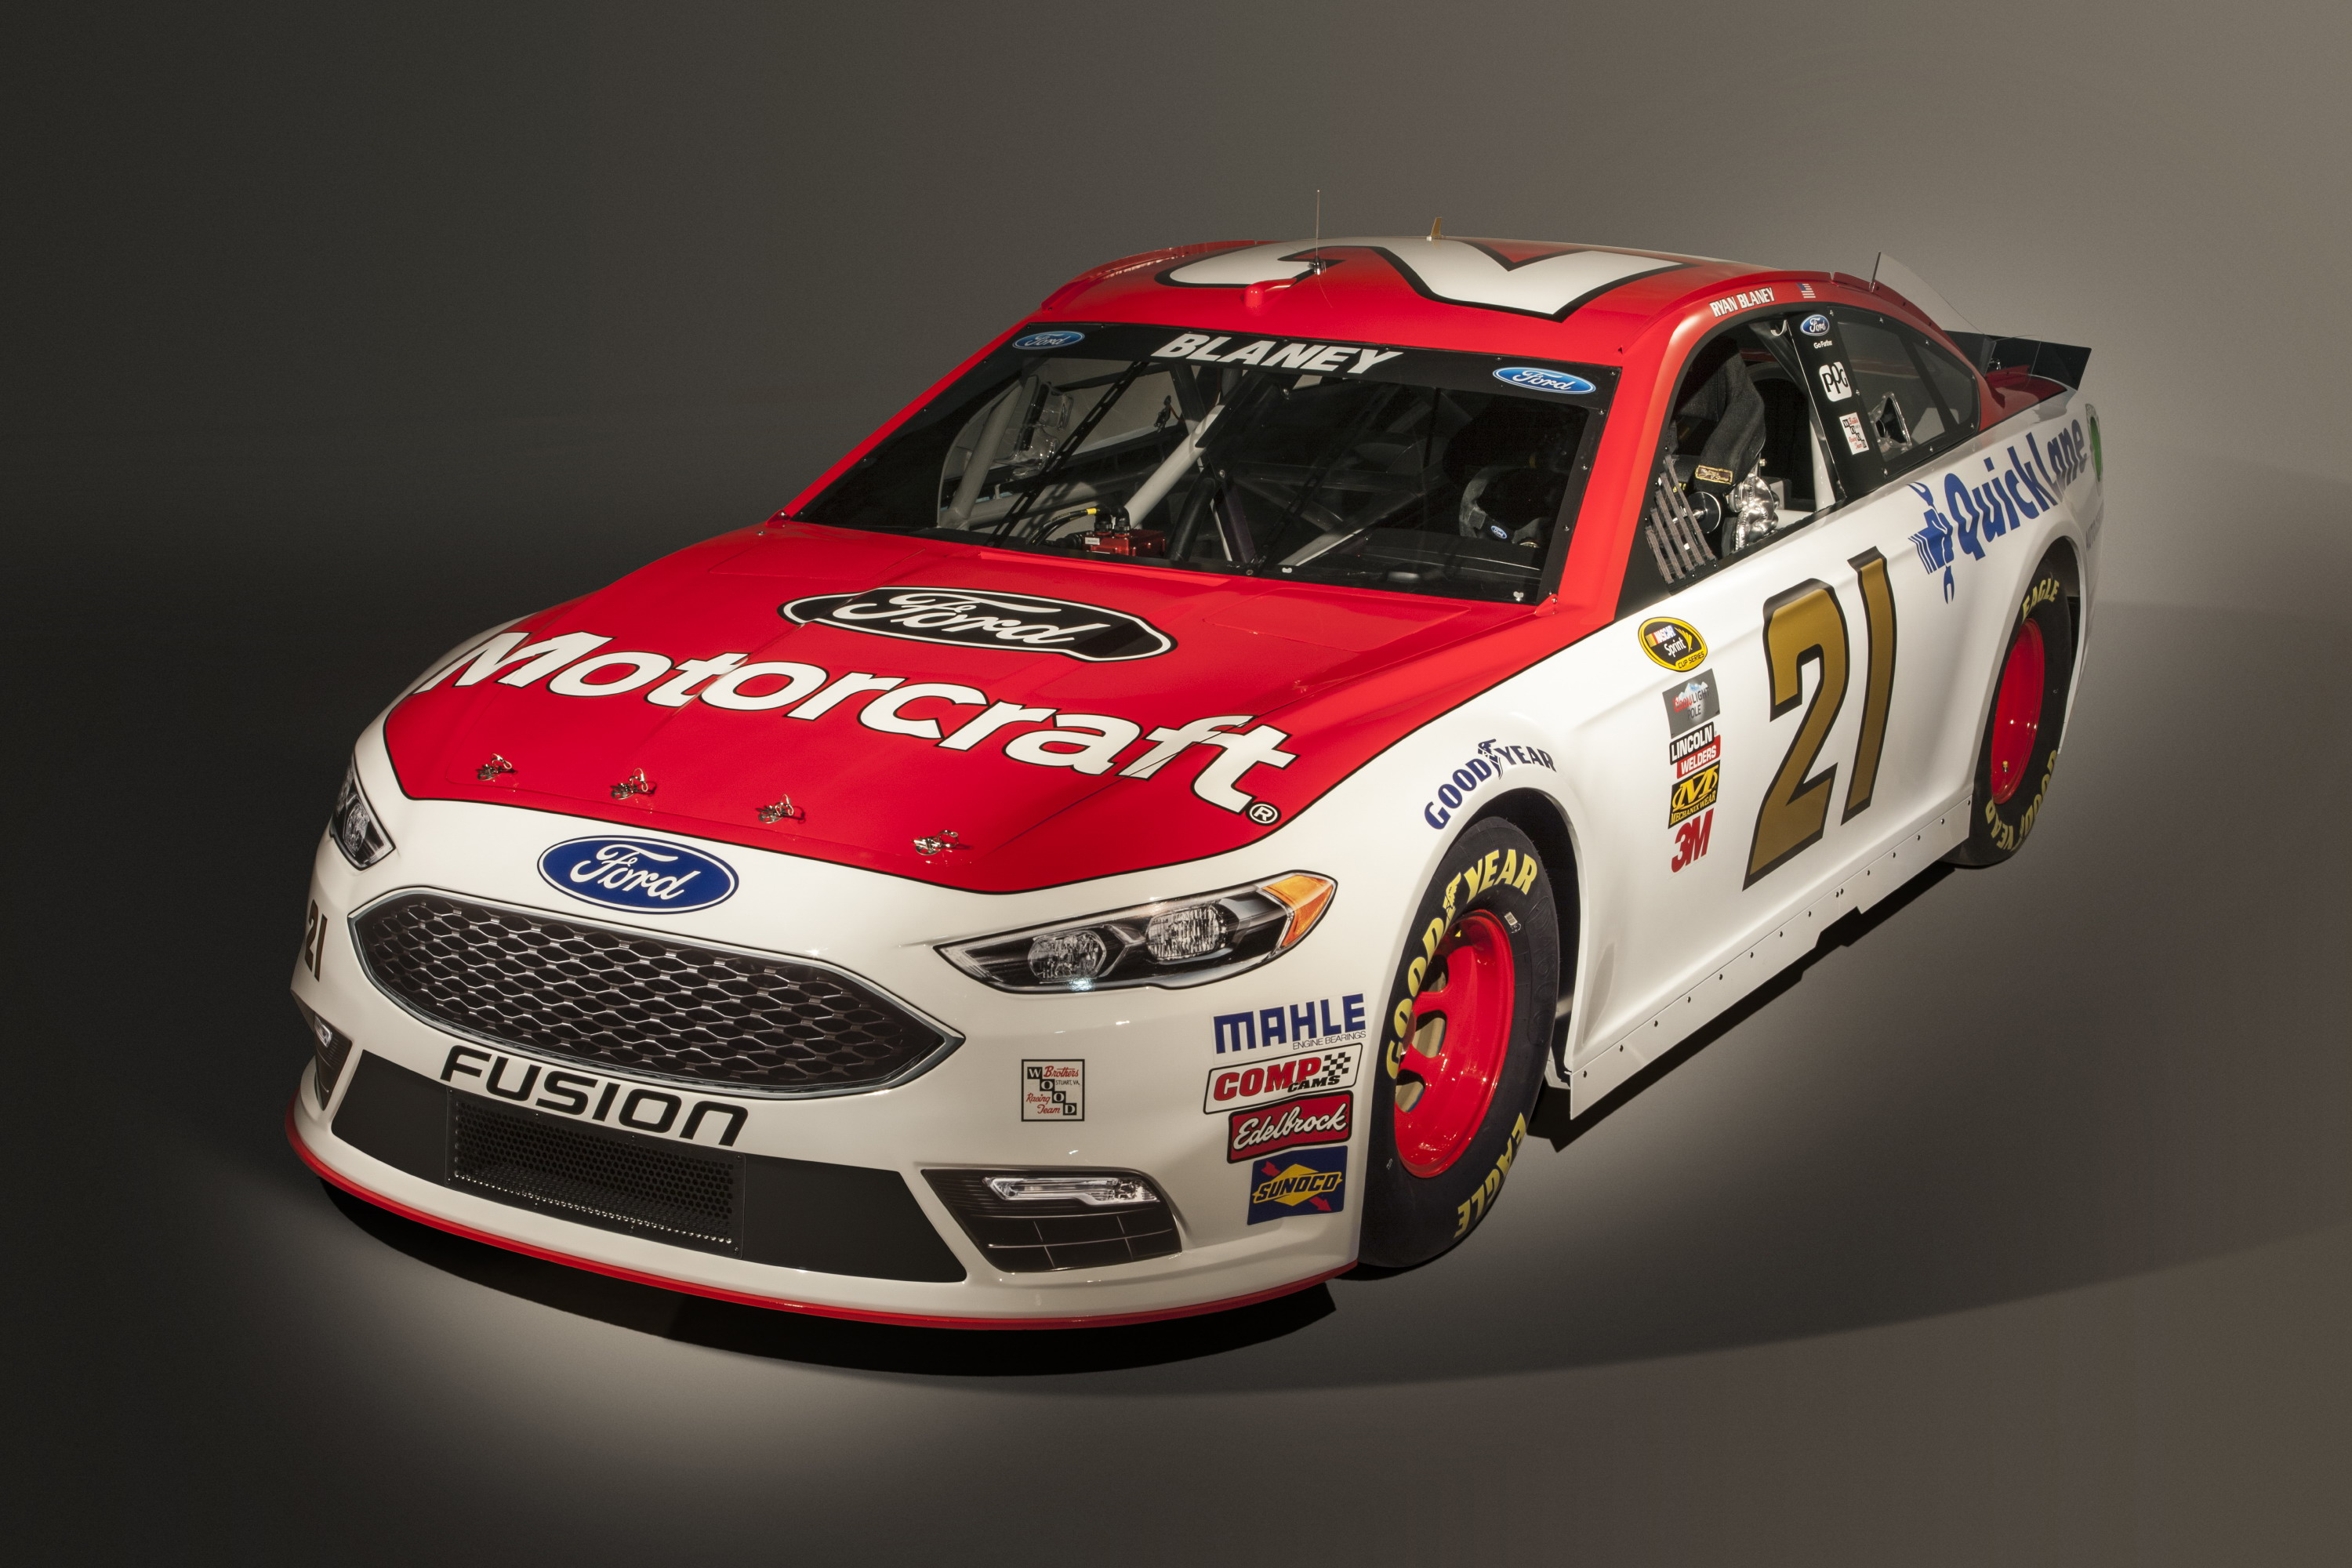 2016 Ford Fusion NASCAR | Top Speed